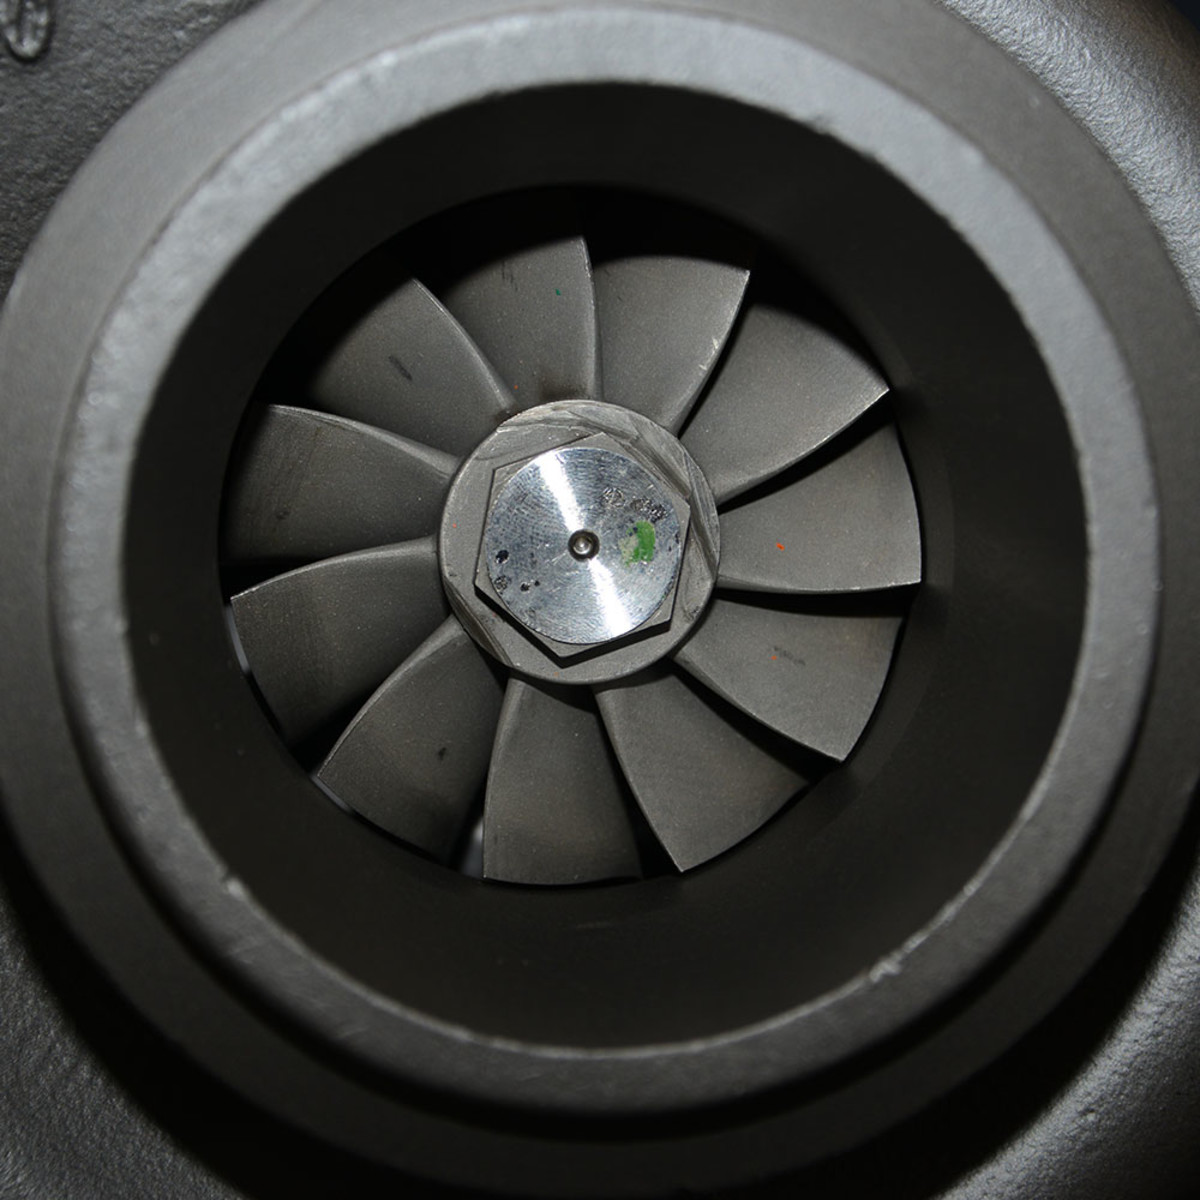 Up close and personal view of a turbocharger's compressor wheel.